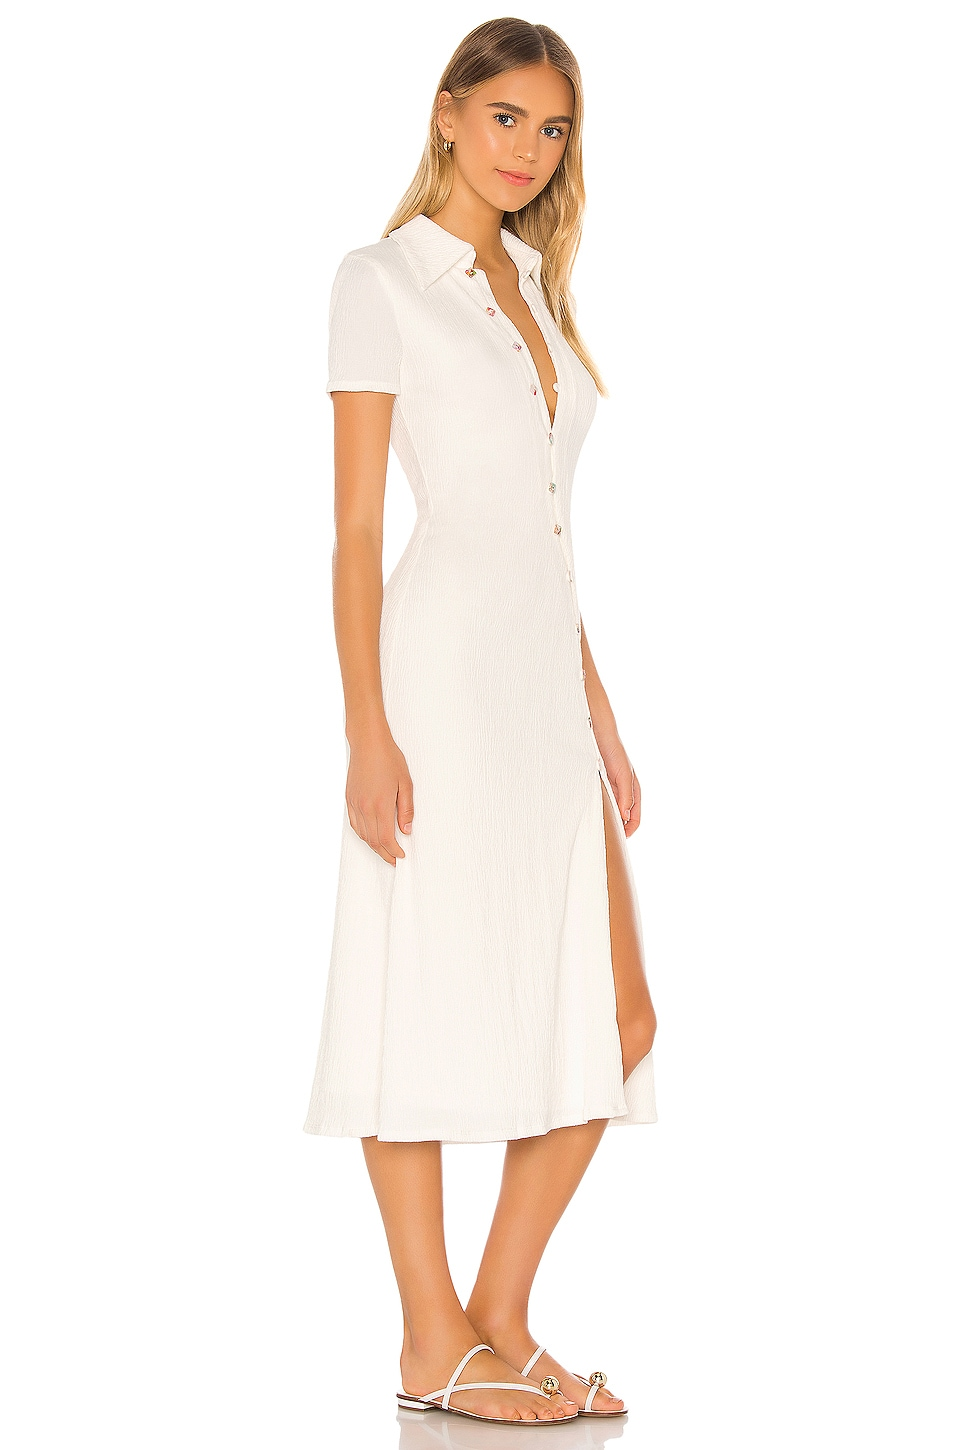 Polly Midi Dress, view 2, click to view large image.